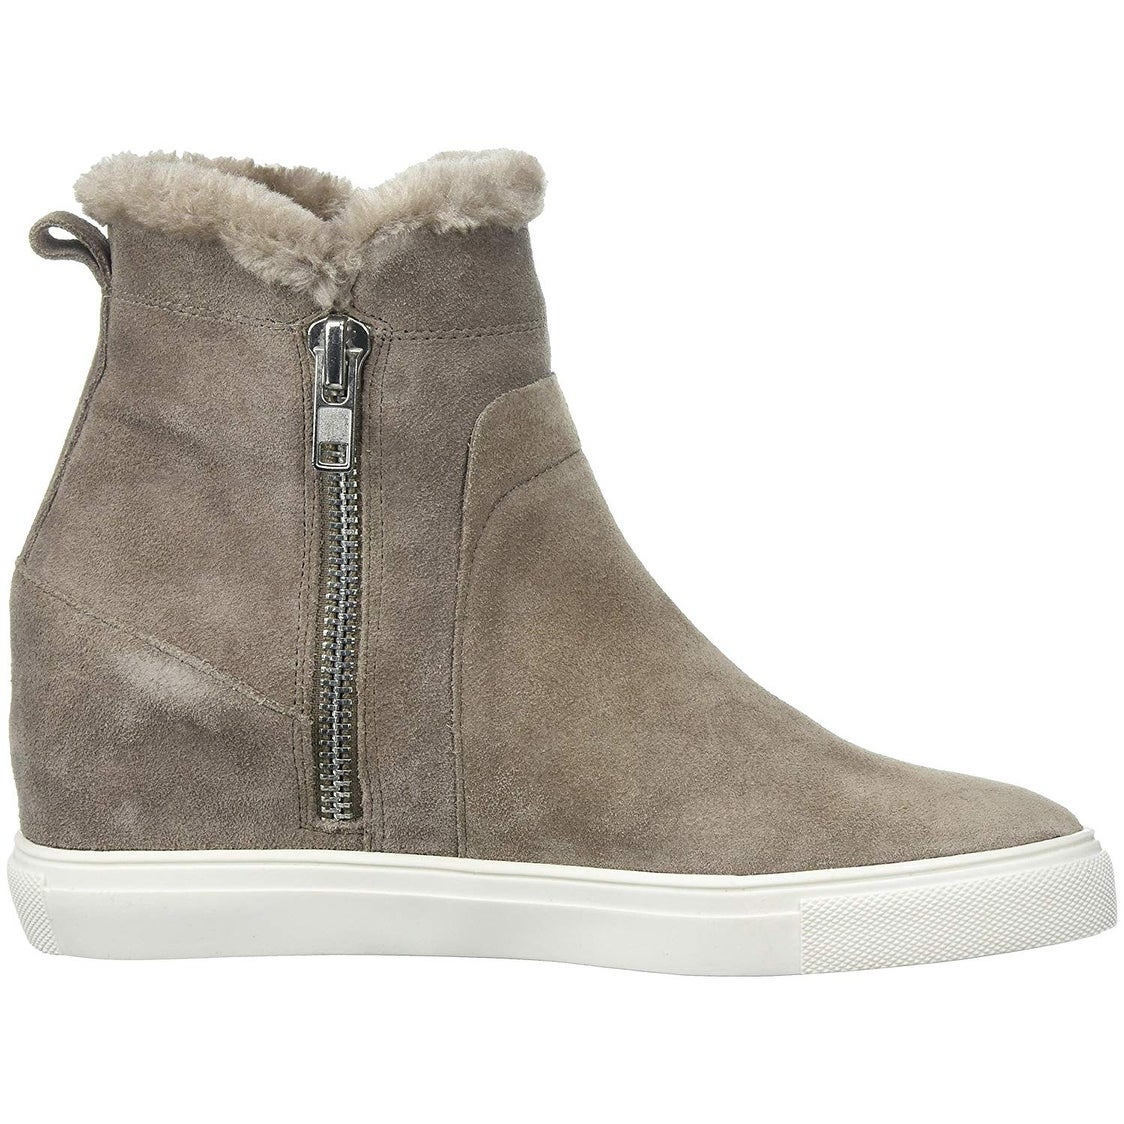 045bf968908 Shop Steven by Steve Madden Womens Cacia Leather Hight Top Zipper Fashion  Sneakers - Free Shipping On Orders Over  45 - Overstock - 23448710